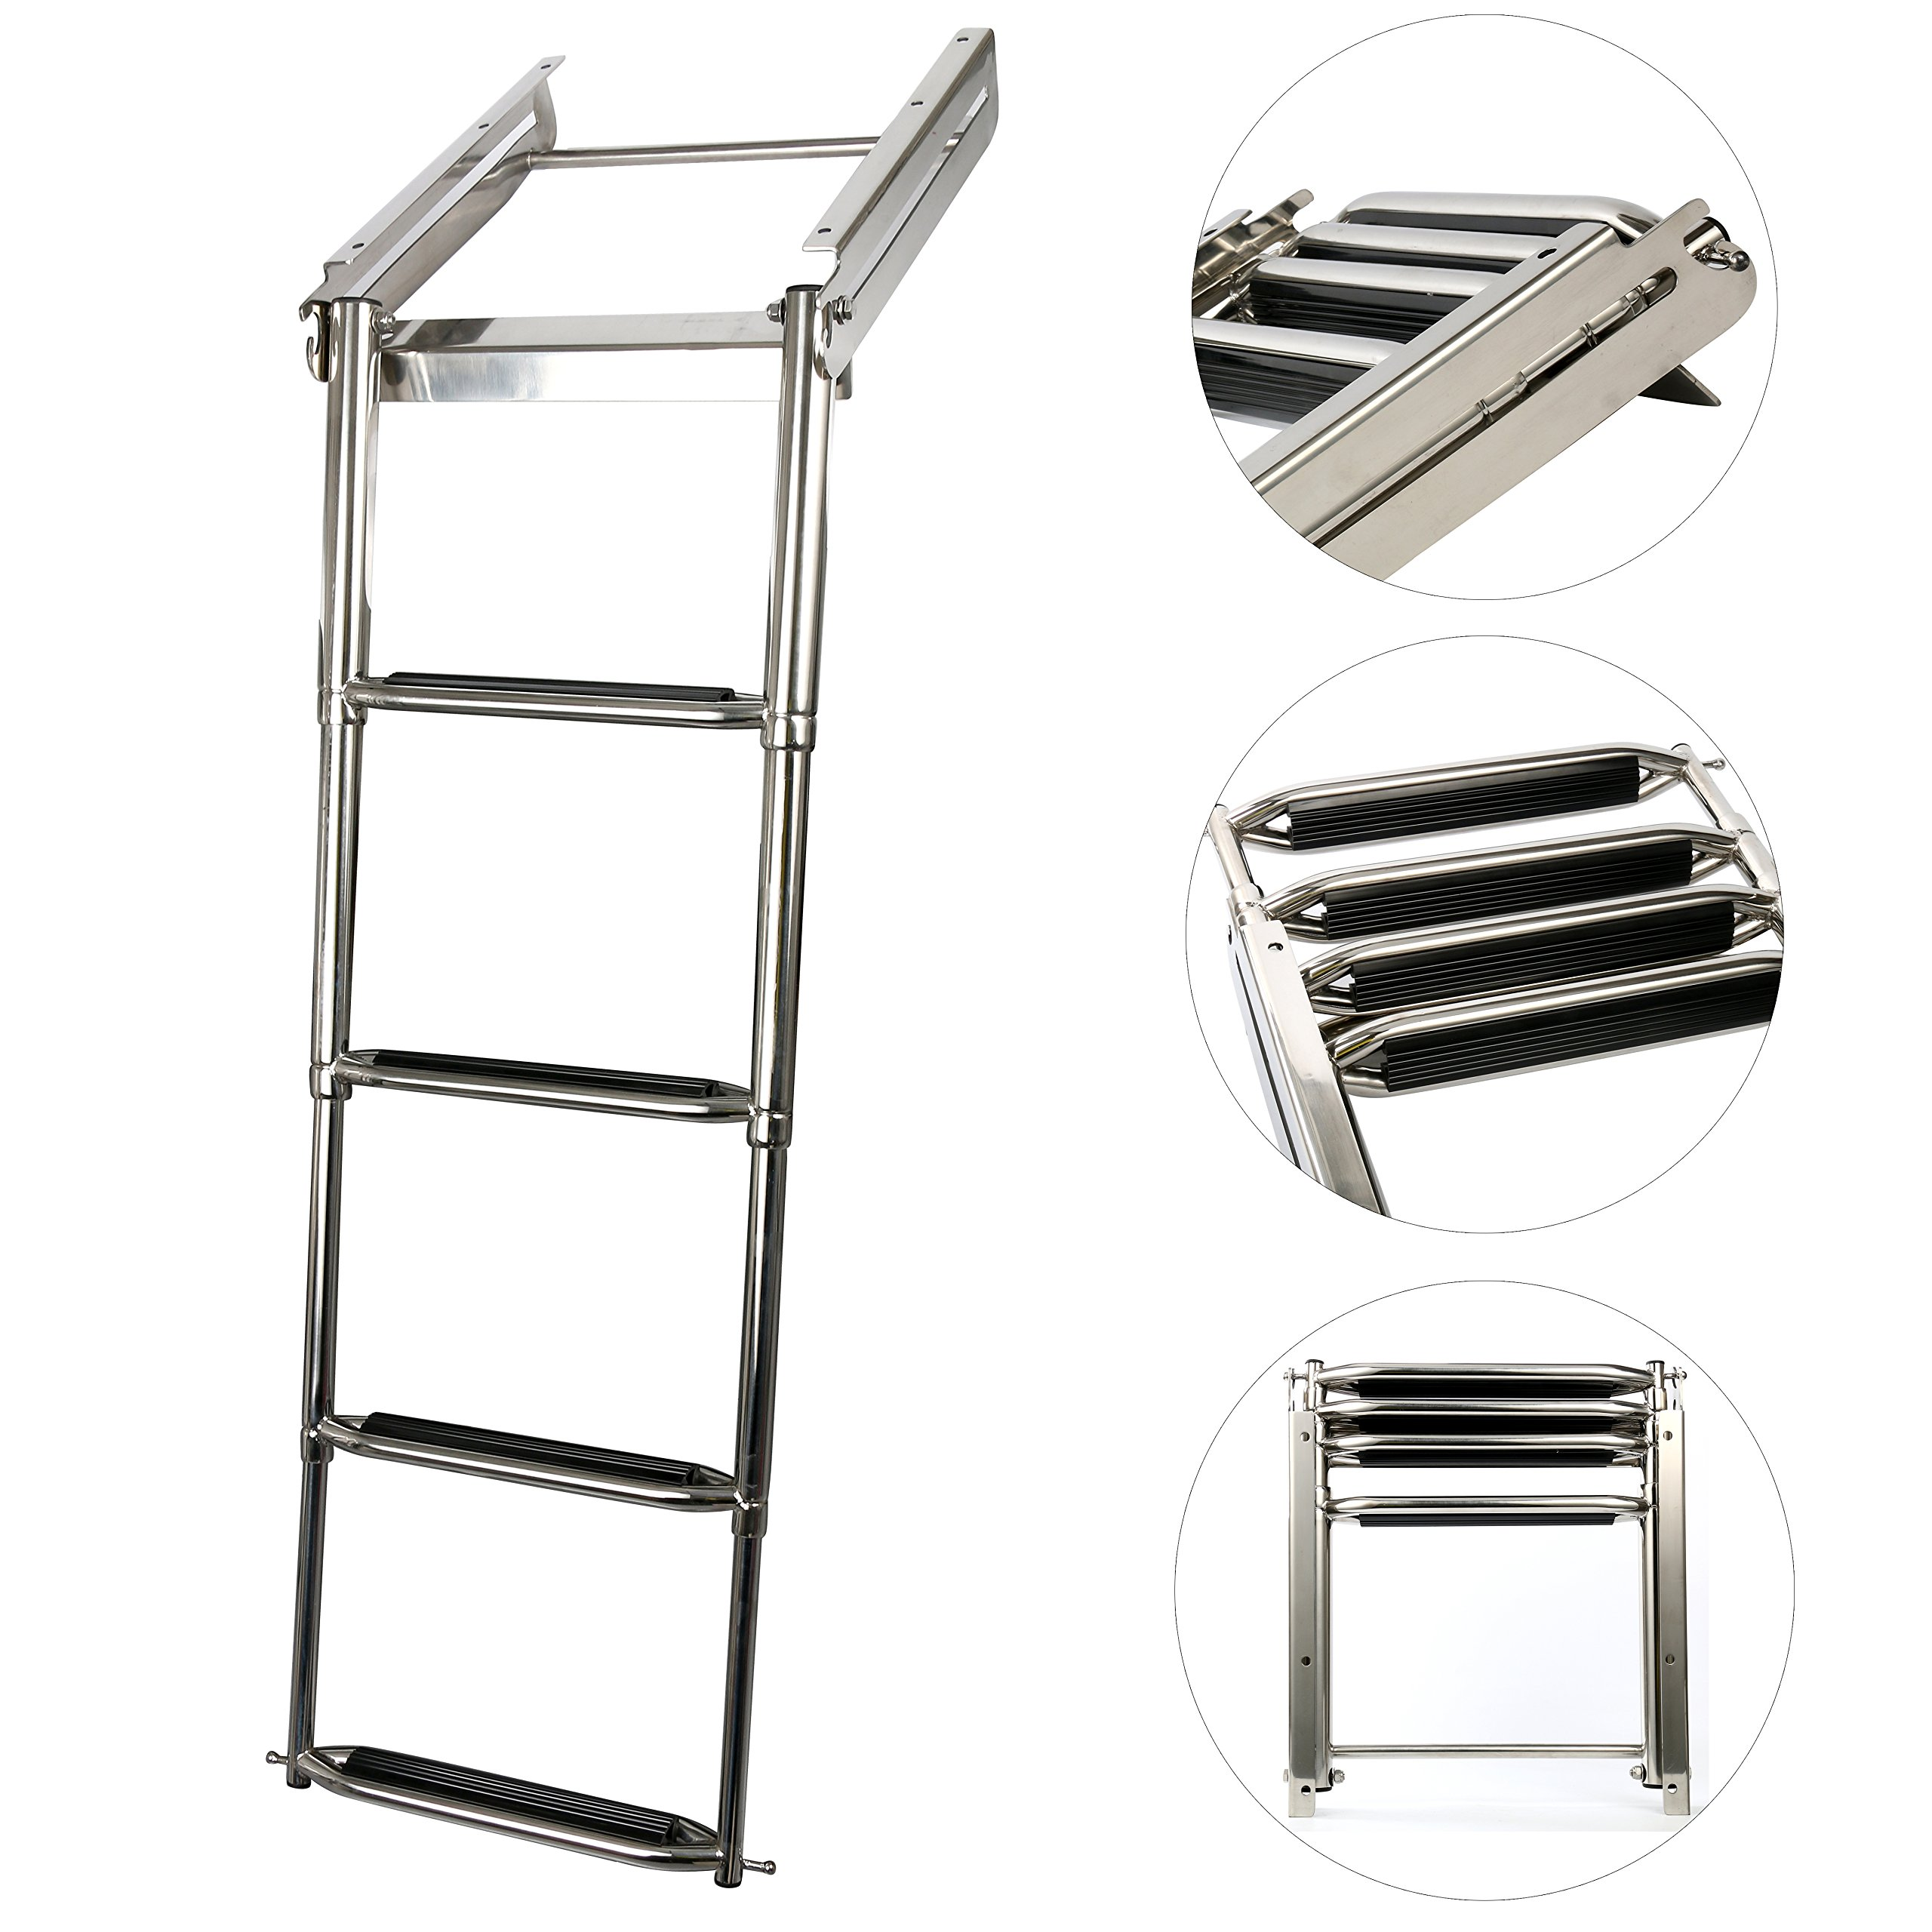 Amarine-made 4-step Under Platform Slide Mount Boat Boarding Ladder, Telescoping, Stainless Steel by Amarine-made